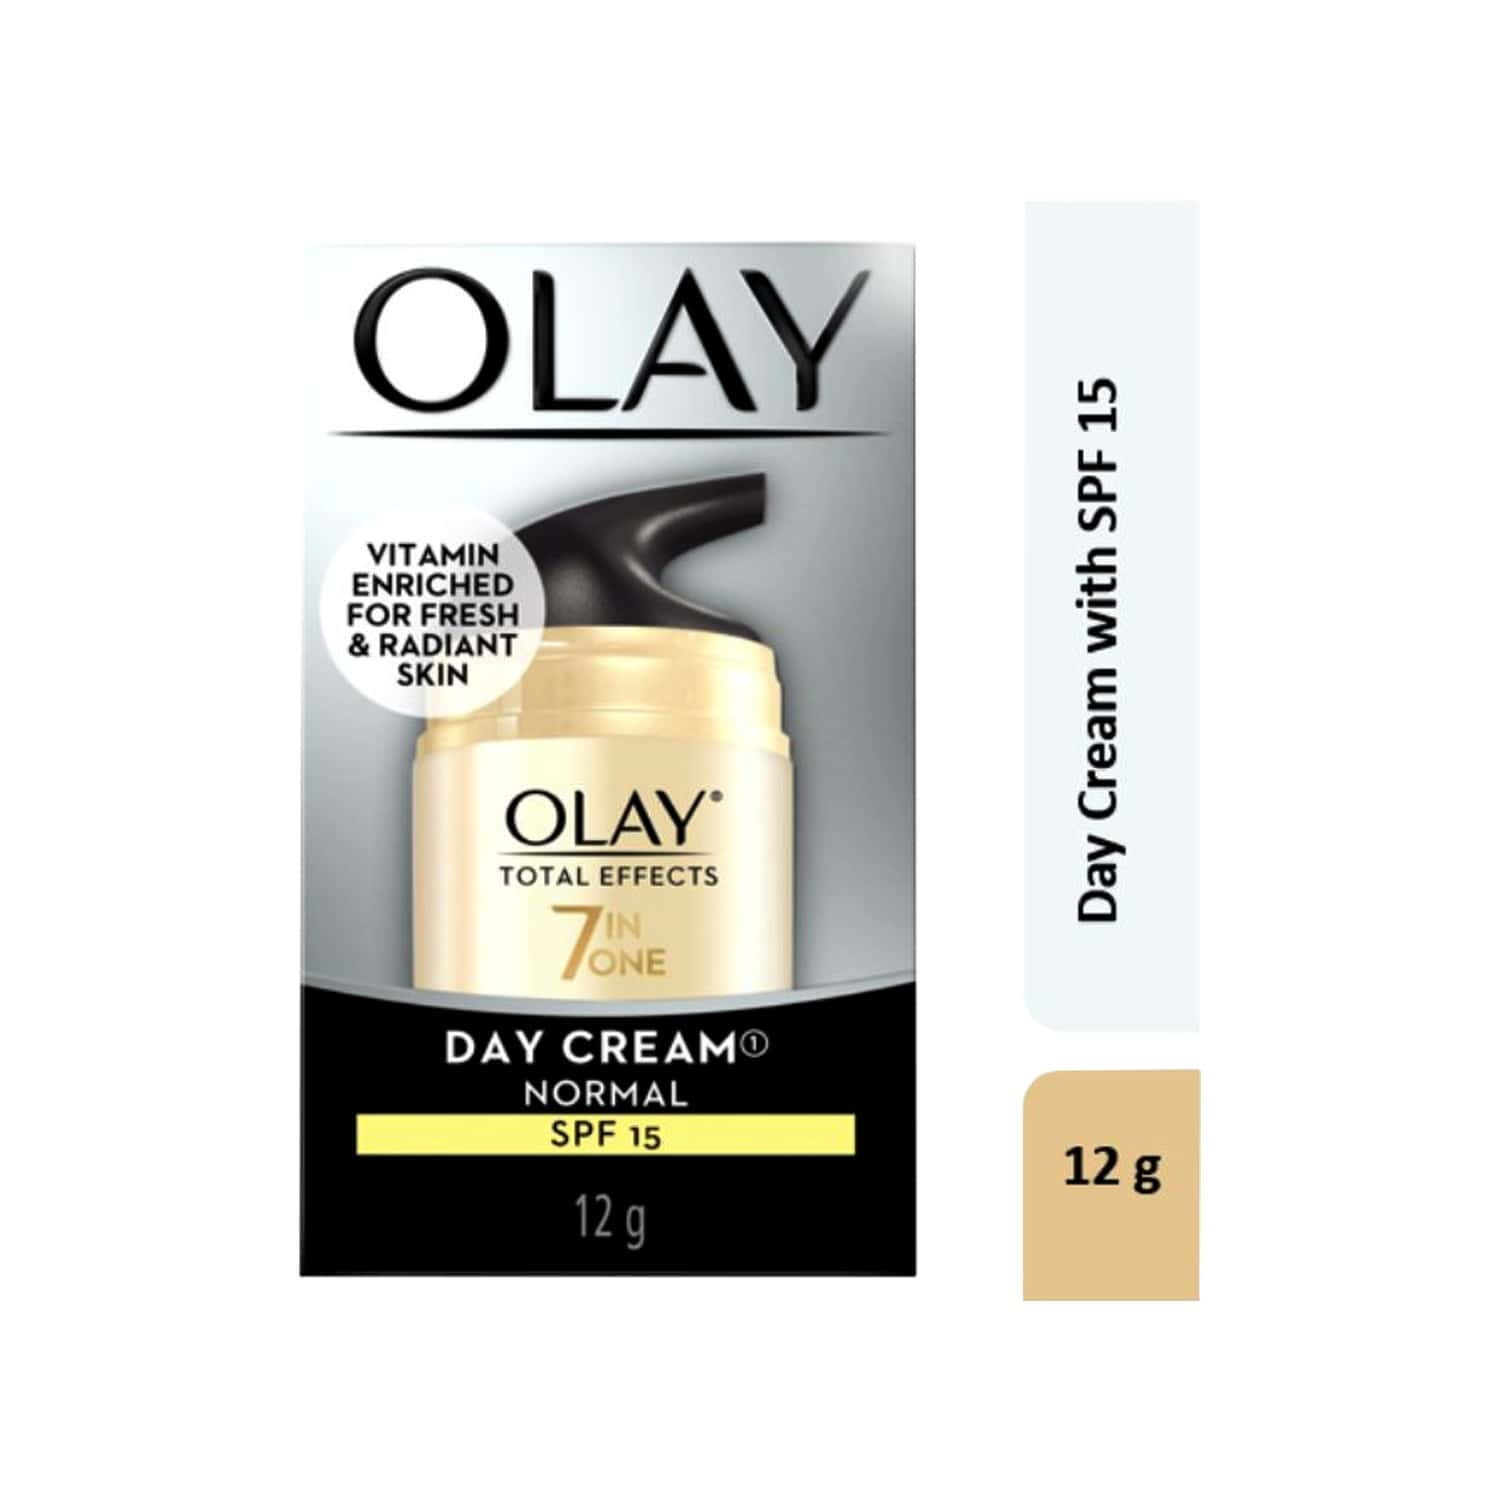 Olay Total Effects Spf 15 - 12g